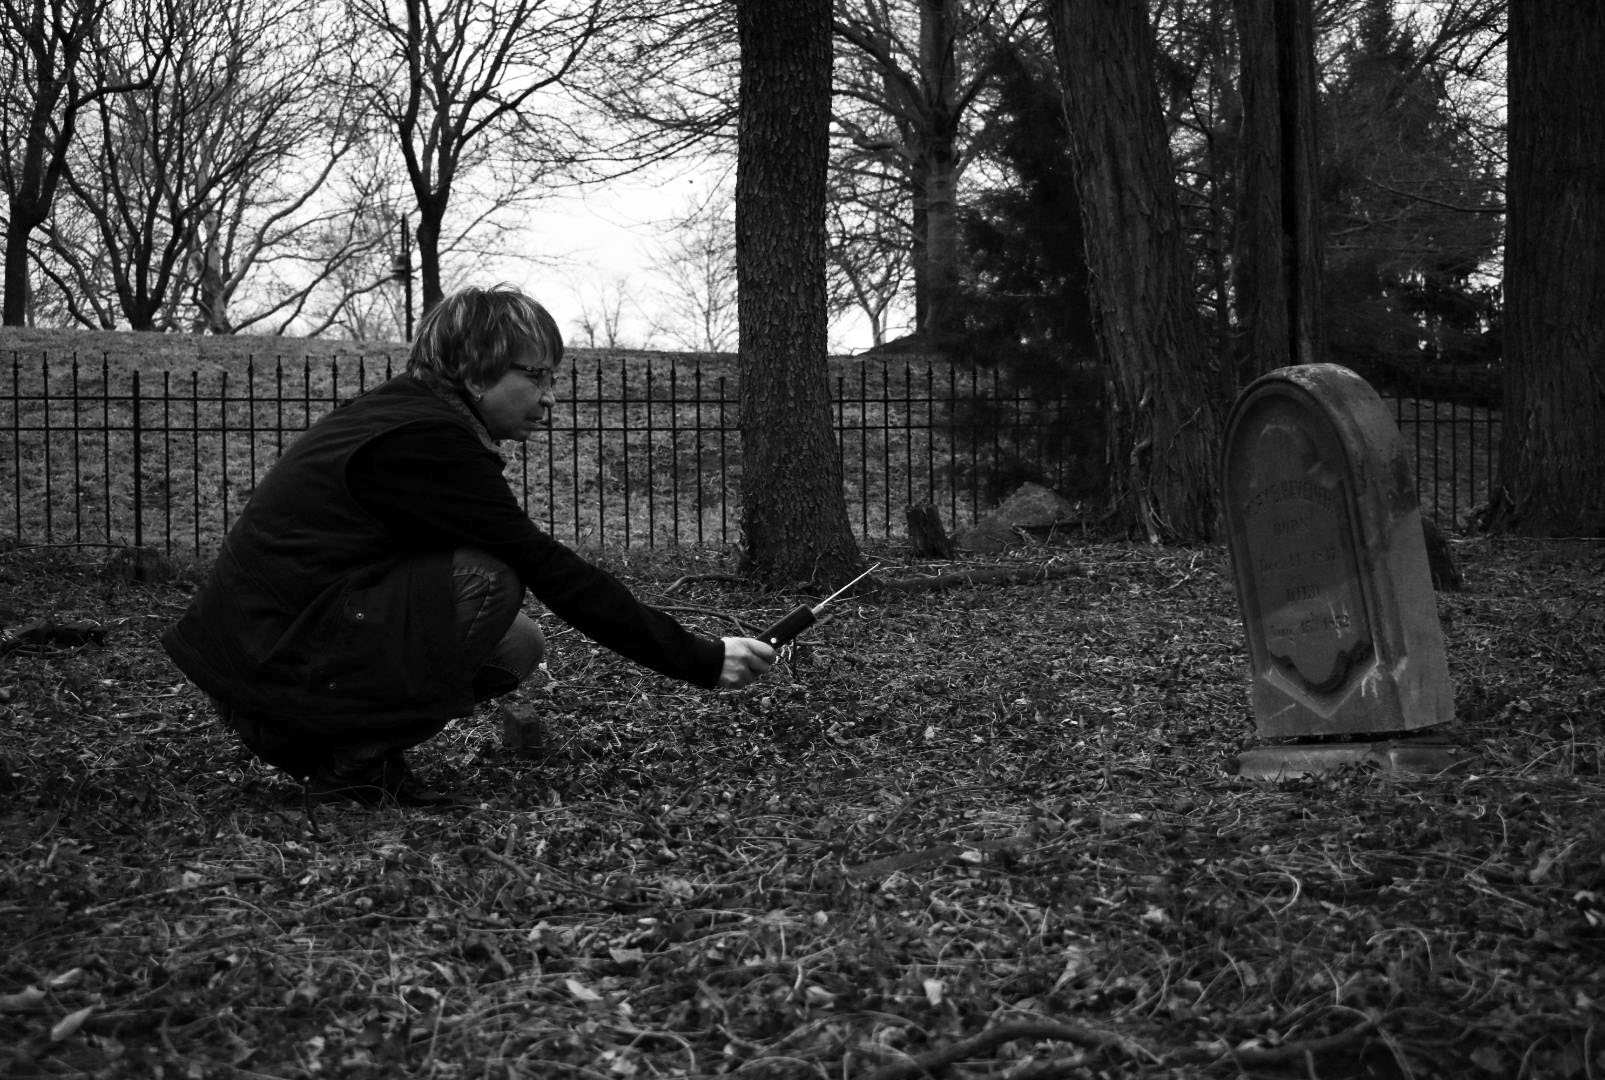 Paranormal investigator Lori Miars, co-founder of Northern Virginia Spirits and Paranormal Investigators, reaches out to the dead at Broad Run Cemetery in Ashburn, Va., Tuesday, Feb. 13, 2018. According to a plaque beside the graveyard, 35 family members and friends of John LeFevre, whose family once owned and farmed the land, were buried there between 1750 and 1911. (Lindsey Leake/American University)